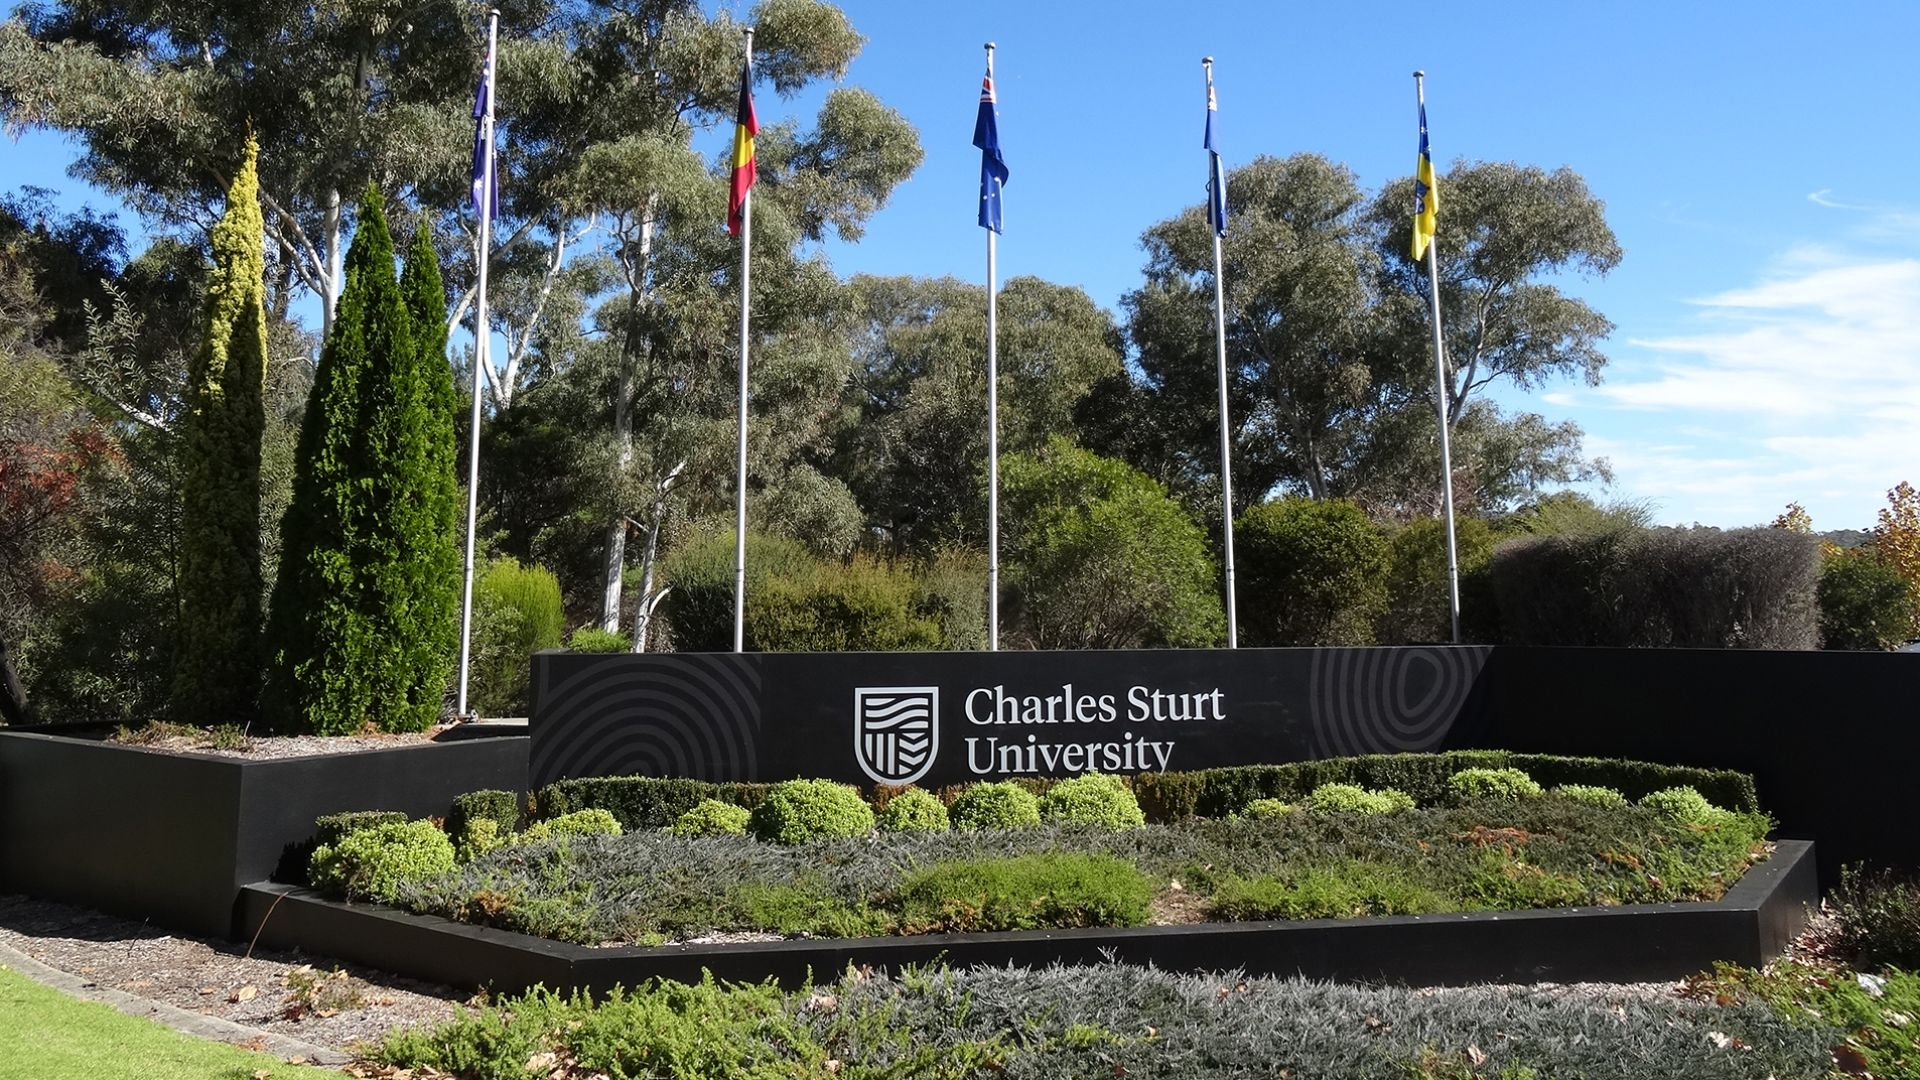 Legal expert to deliver Charles Sturt public lecture in Bathurst